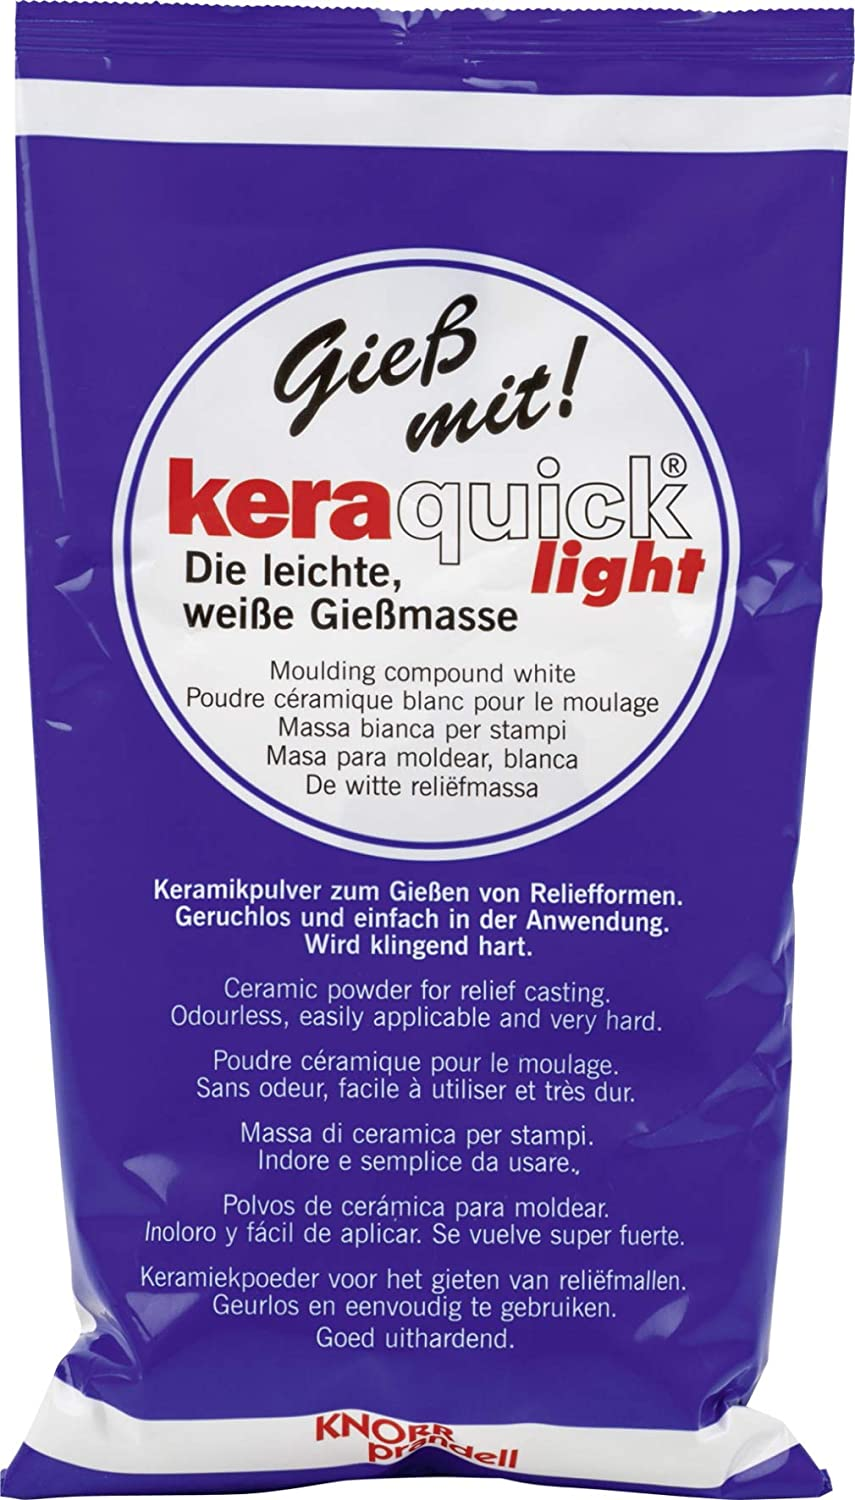 Knorr Prandell Keraquick Moulding Compound, Light White 212160500